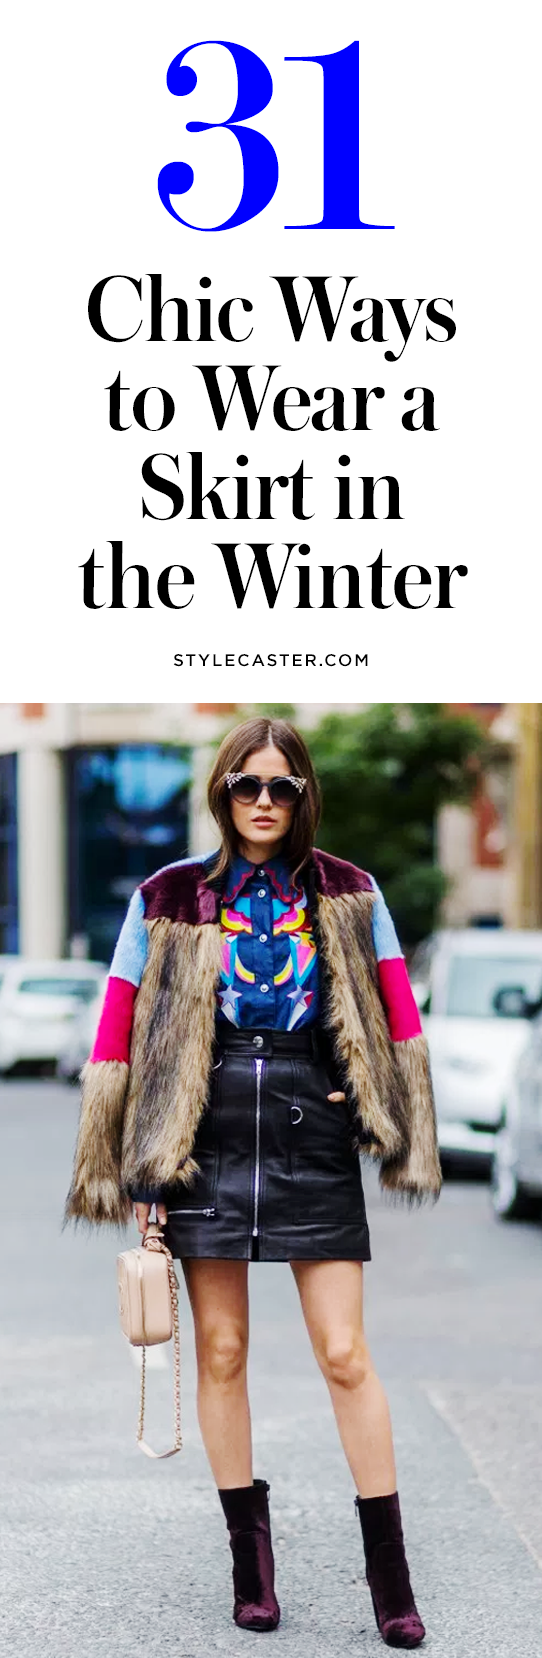 31 Winter Skirt Outfit Ideas to Copy Right Now - If you're sick of layering up, we have good news: it's possible to bare your legs in cold weather and not freeze. Click through to see 31 street style outfits that show you how to wear a skirt in the winter.